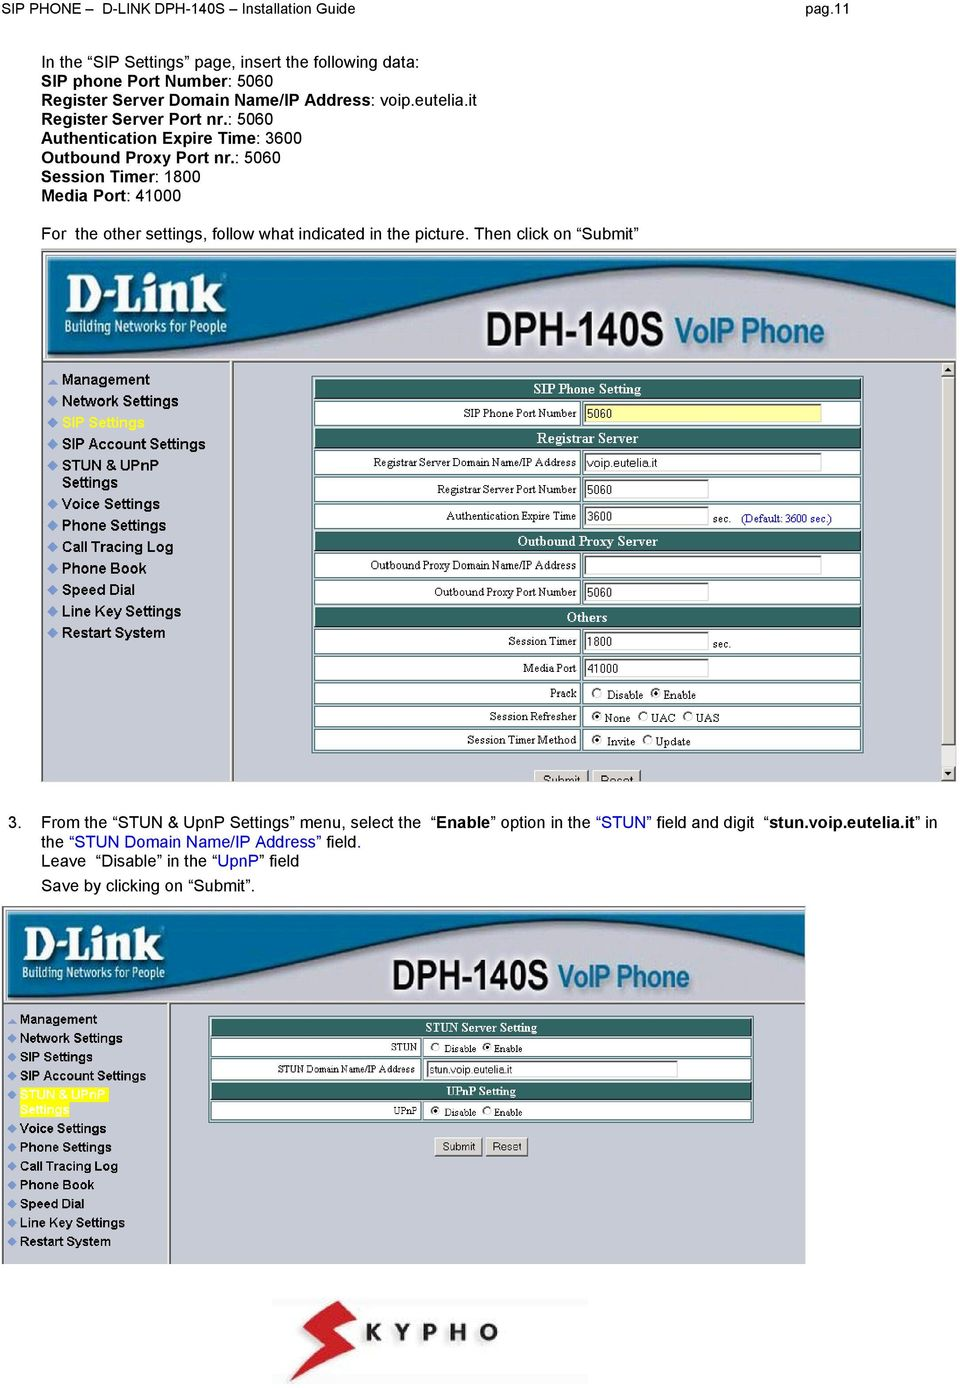 D-LINK DPH-140S SIP PHONE INSTALLATION GUIDE - PDF